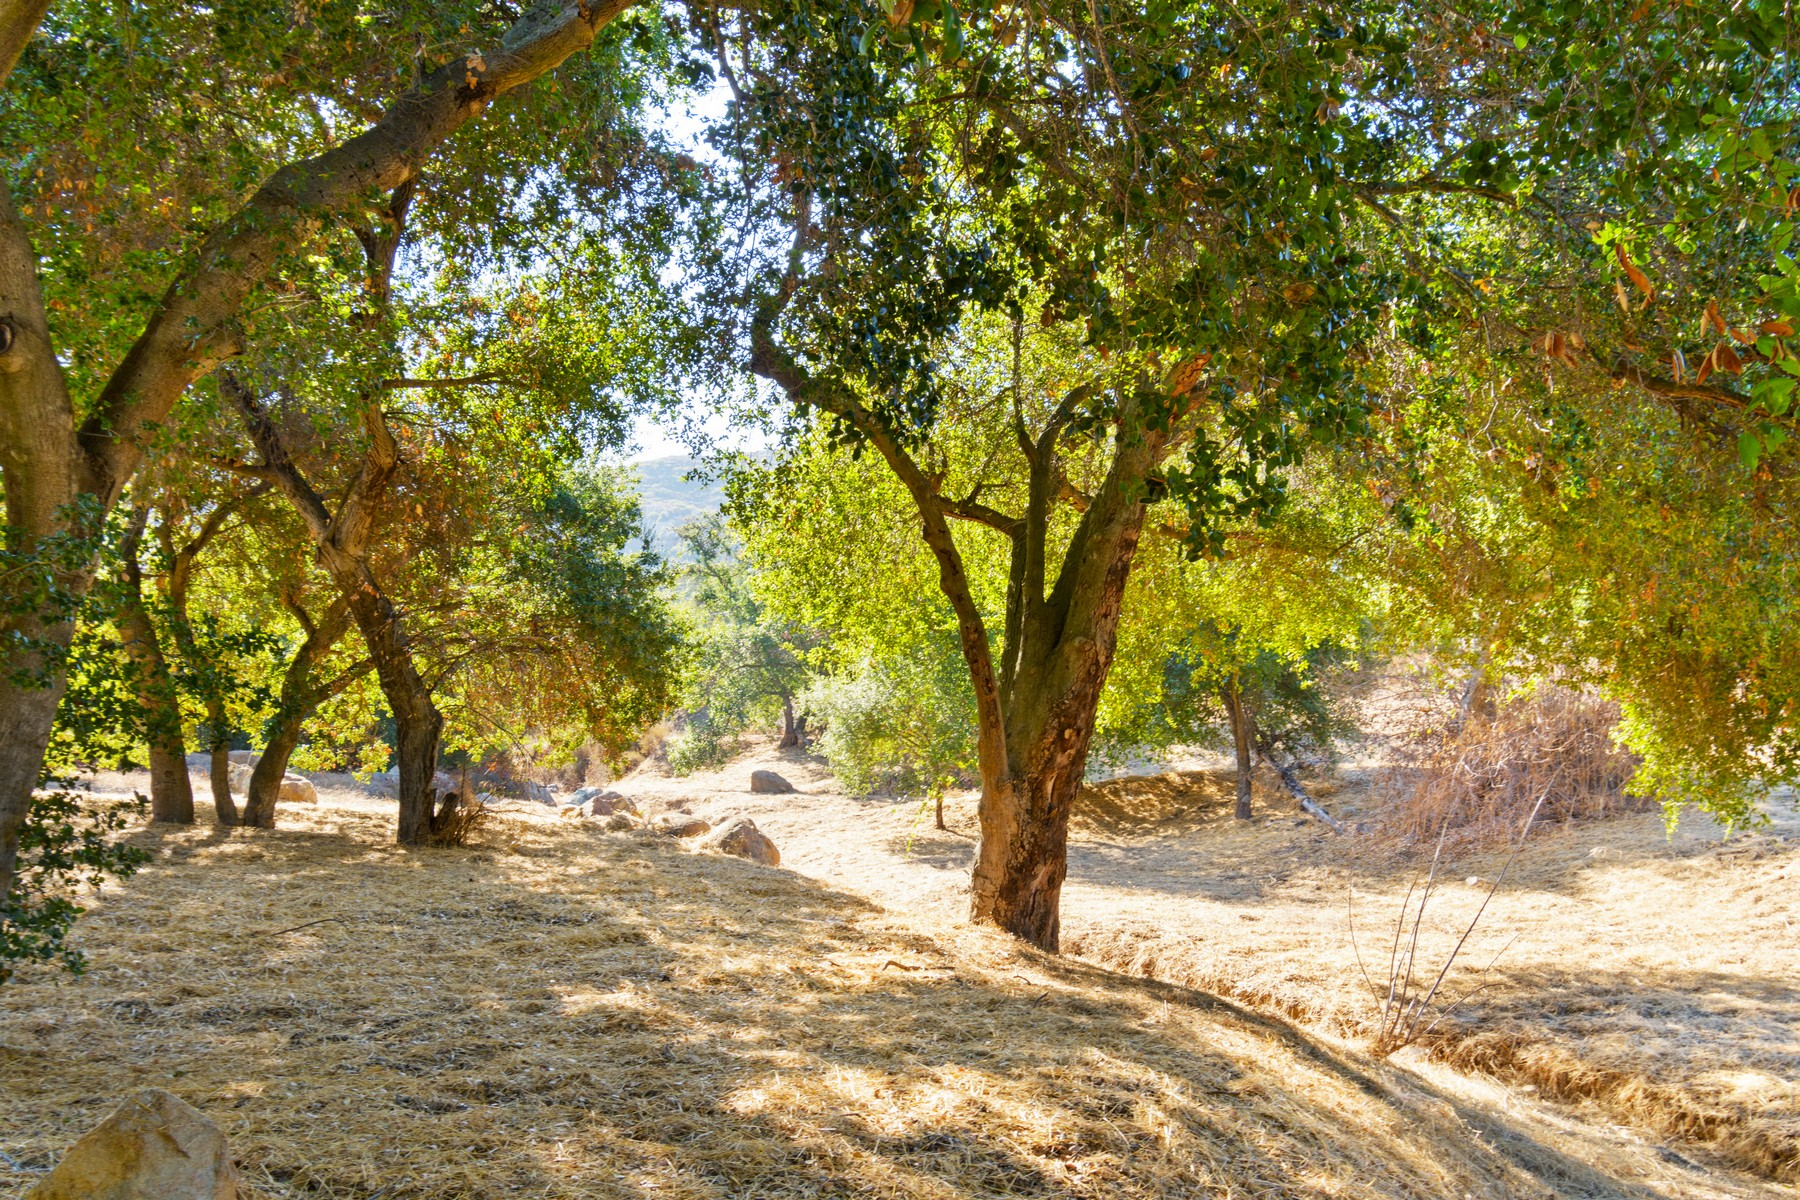 Land for Sale at 0 Old Coach Road Poway, California 92064 United States